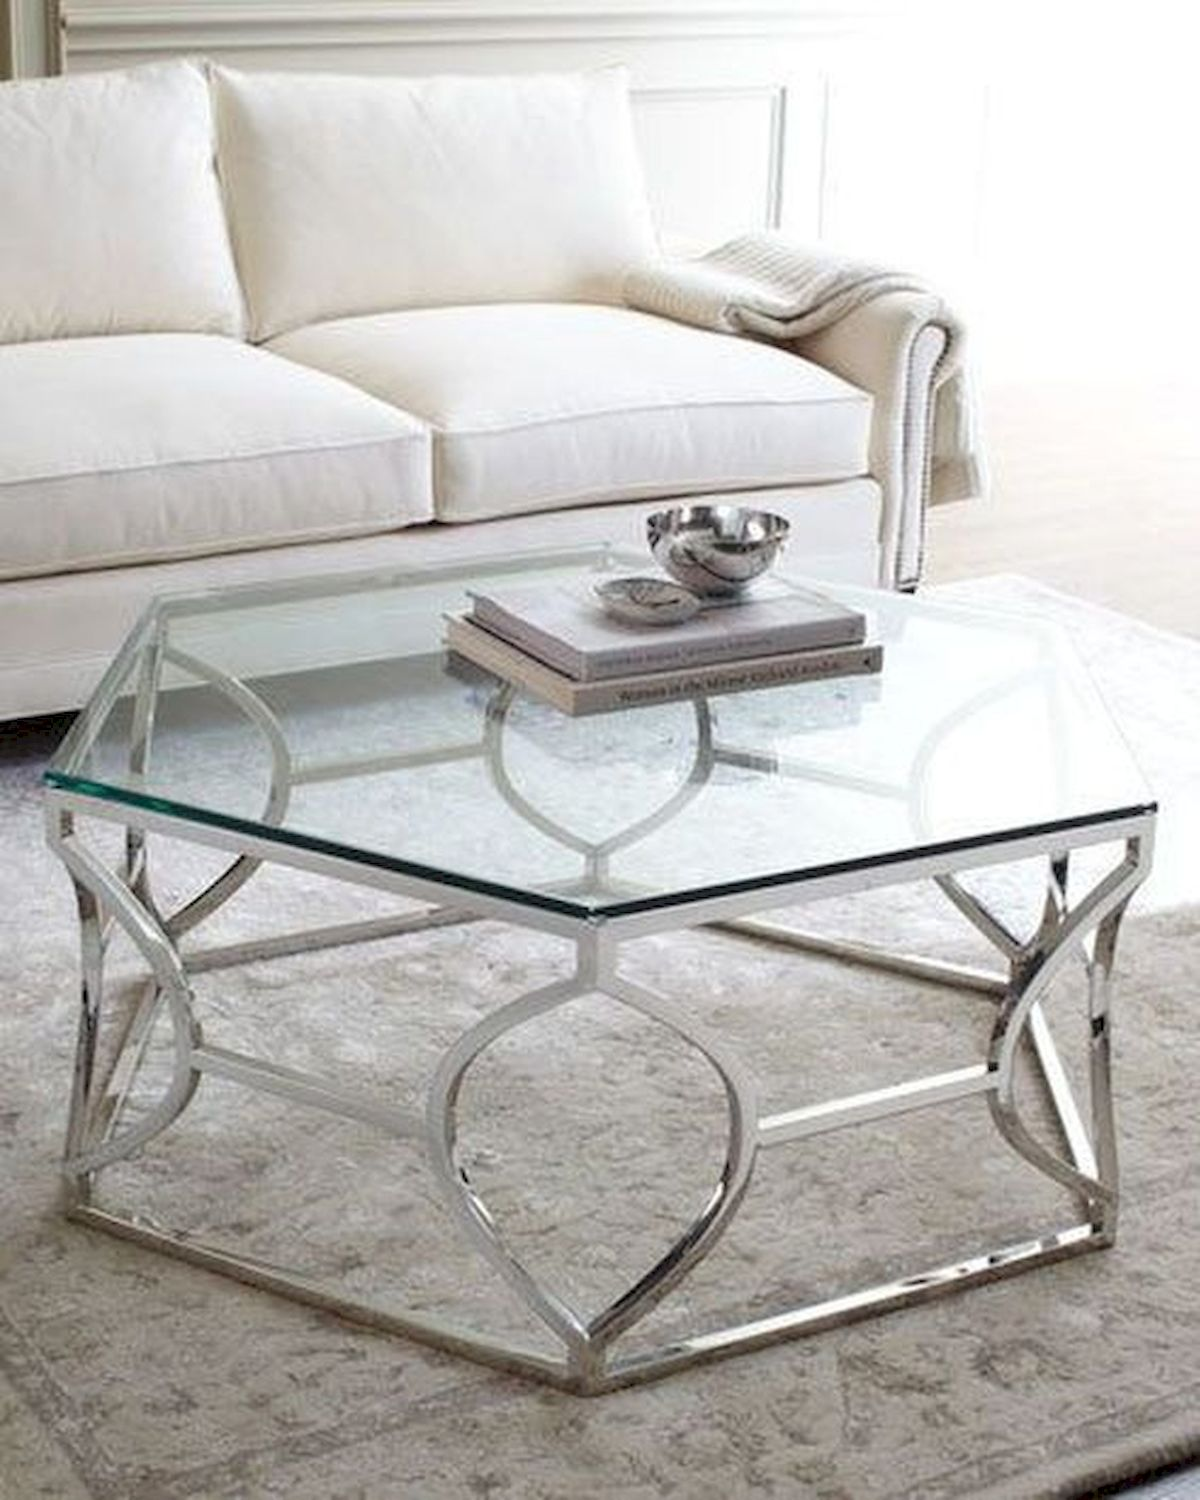 40 Awesome Modern Glass Coffee Table Design Ideas For Your Living Room (8)